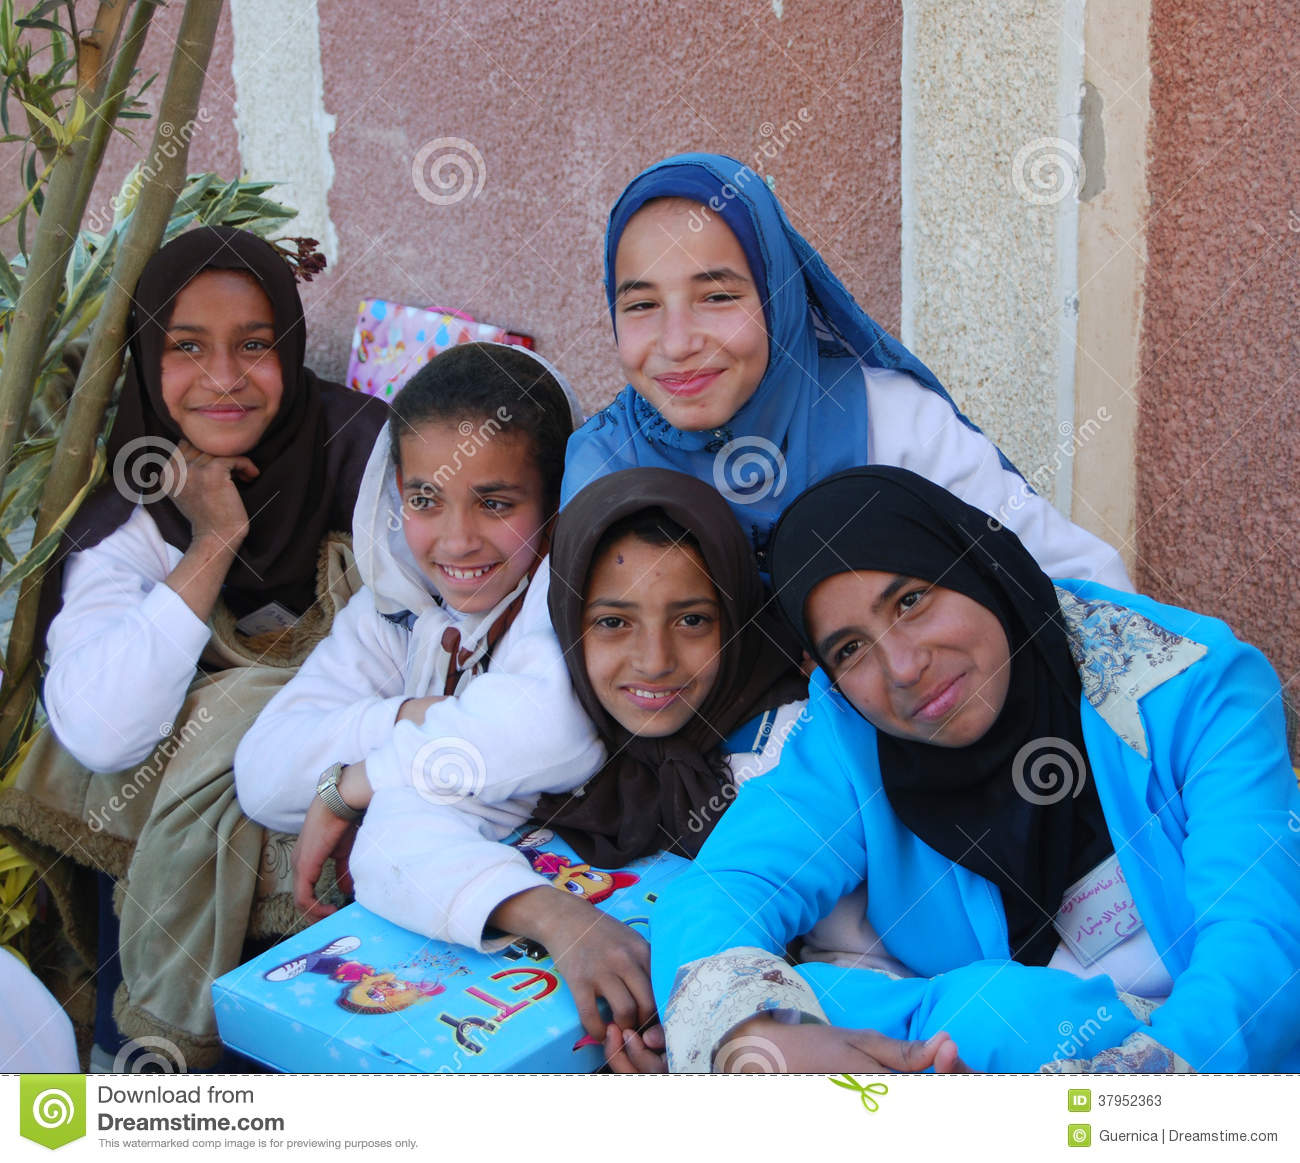 muslim single women in cairo Islam in egypt is the dominant religion with  made egypt their center and cairo their  law that made it easier for a muslim woman to obtain a divorce .